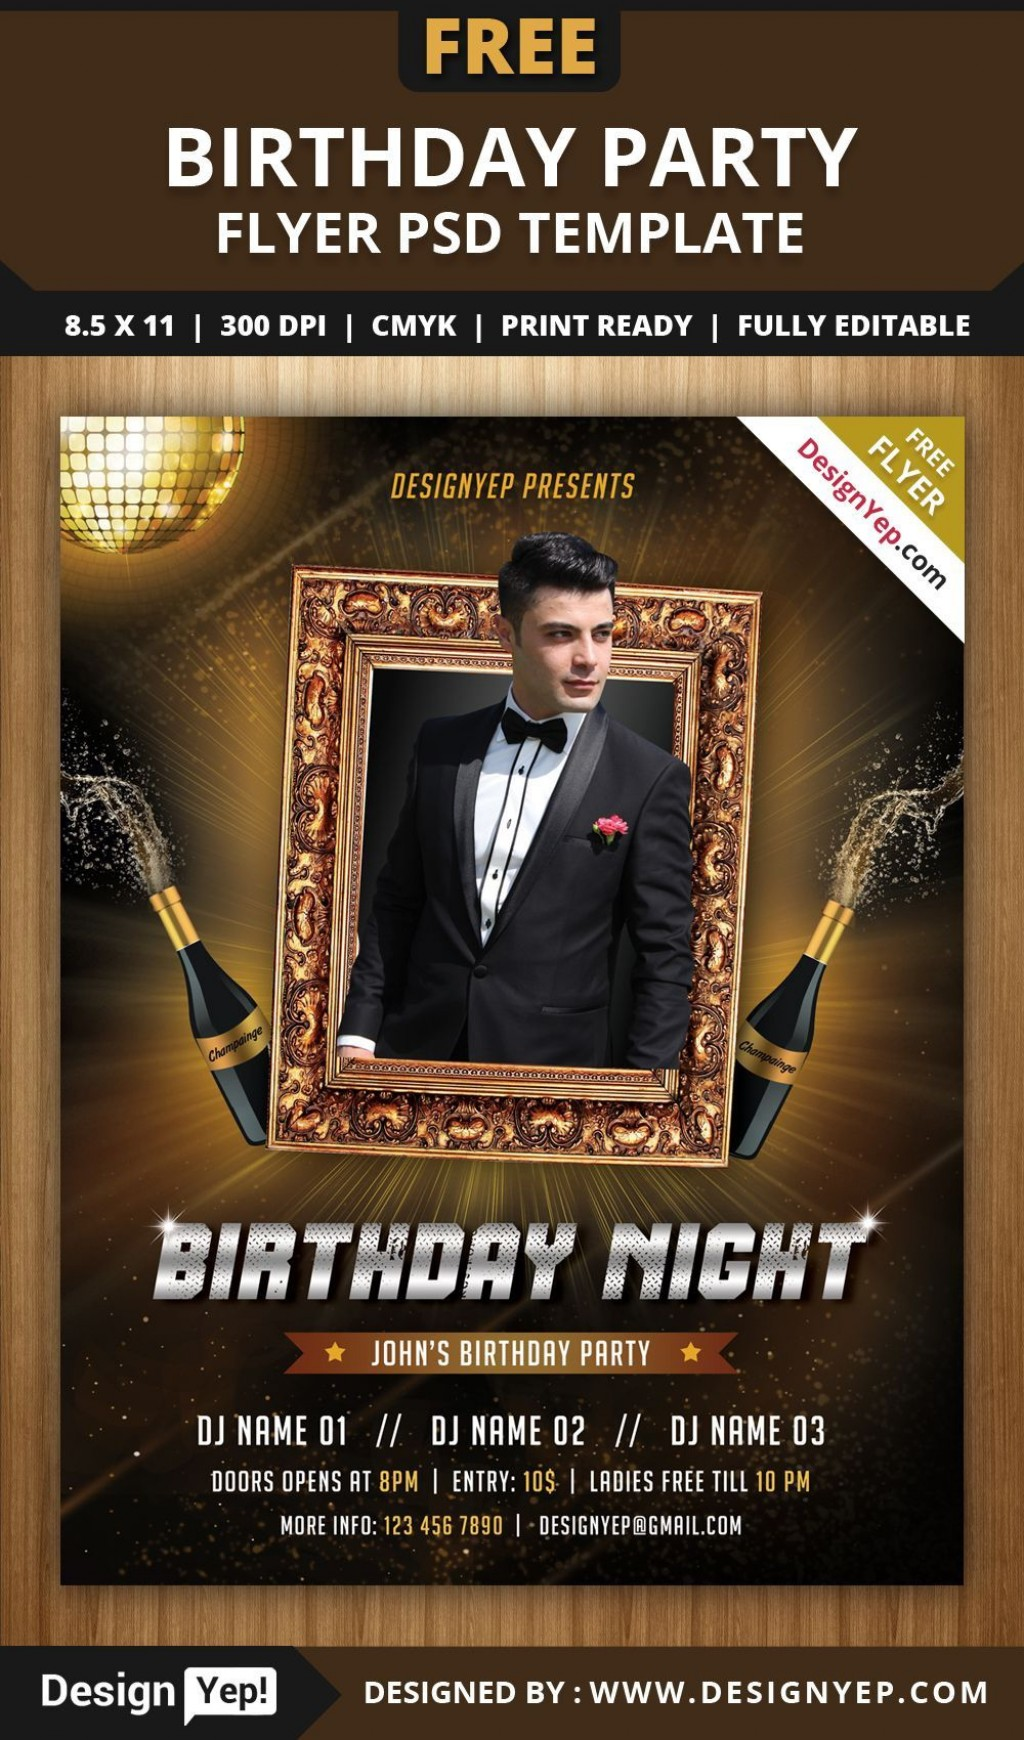 002 Fearsome Free Birthday Flyer Template Psd Inspiration  Foam Party - Neon Glow Download PoolLarge